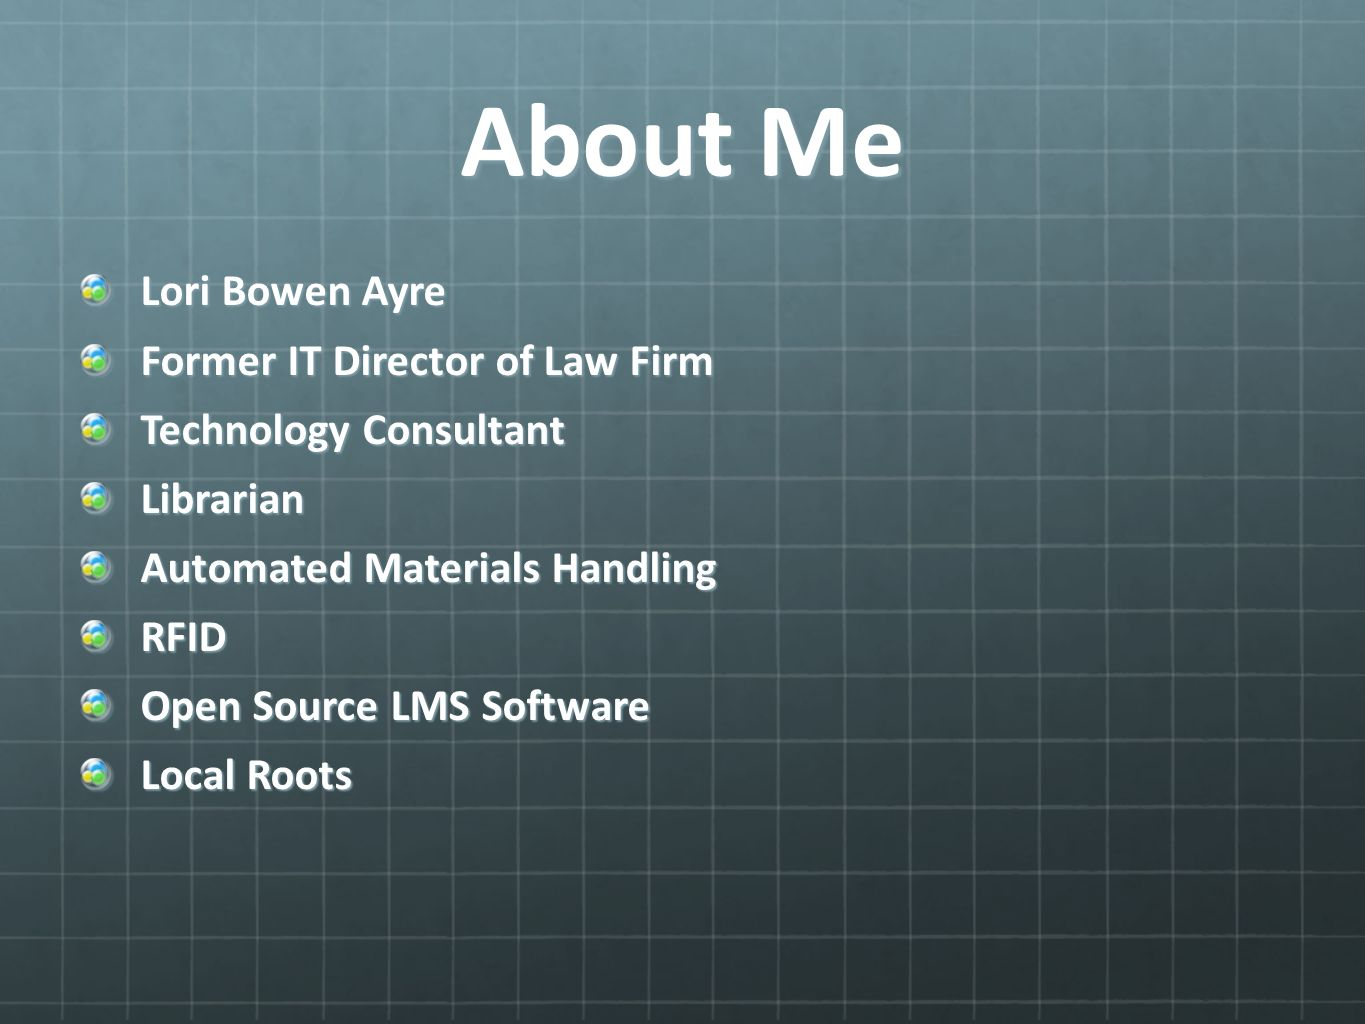 About Me Lori Bowen Ayre Former IT Director of Law Firm Technology Consultant Librarian Automated Materials Handling RFID Open Source LMS Software Local Roots